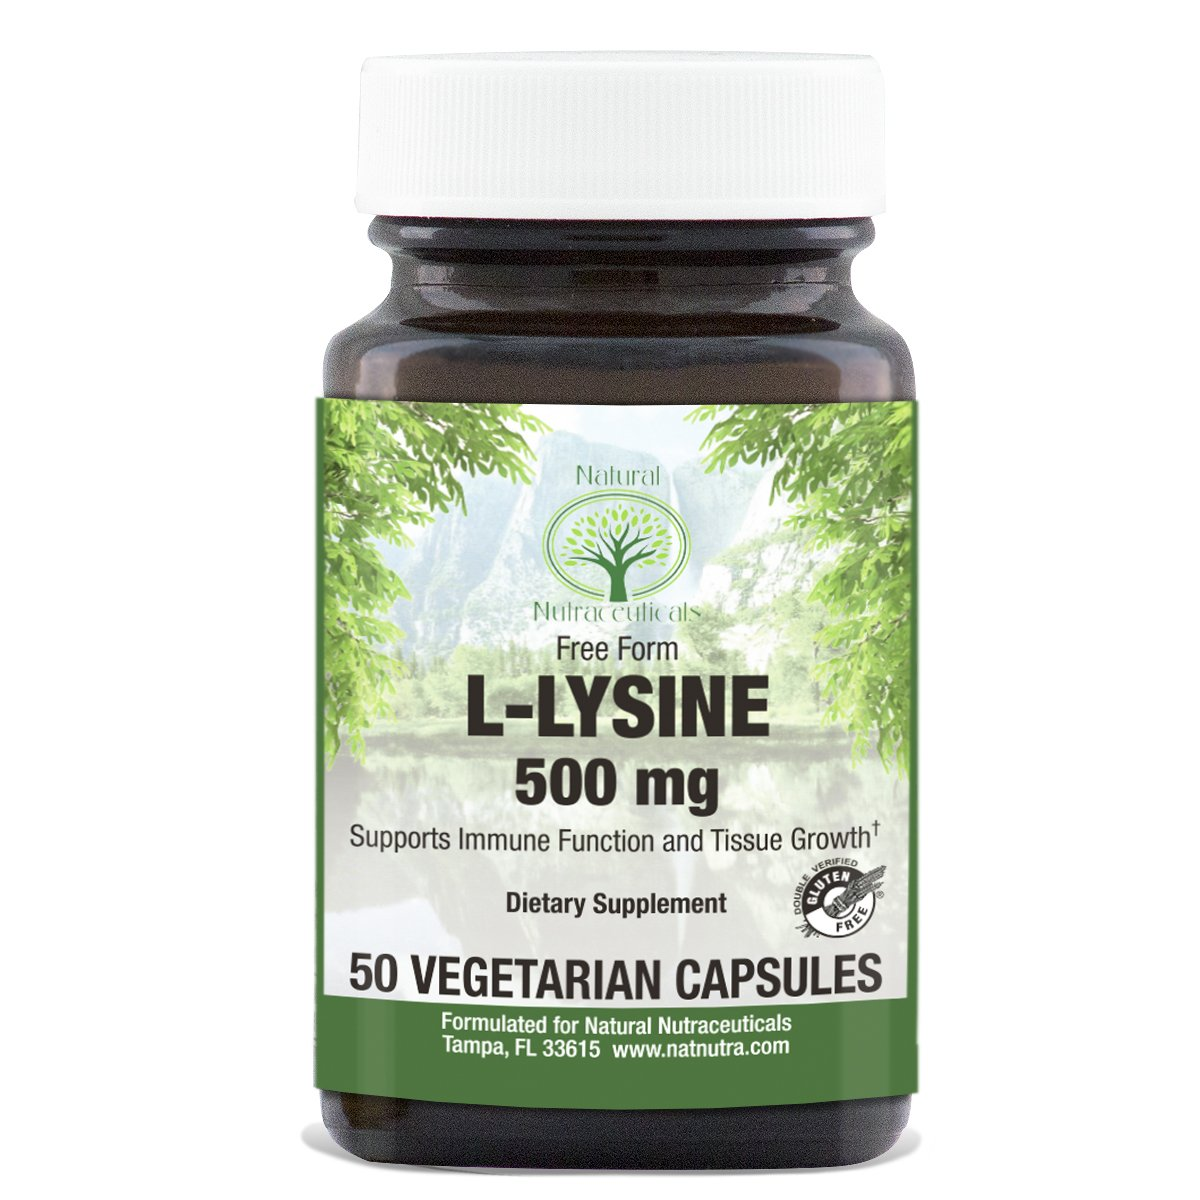 Vegetarian L Lysine HCl by Natural Nutra – 500 mg, 50 Capsules – Free Form Alpha Amino Acid